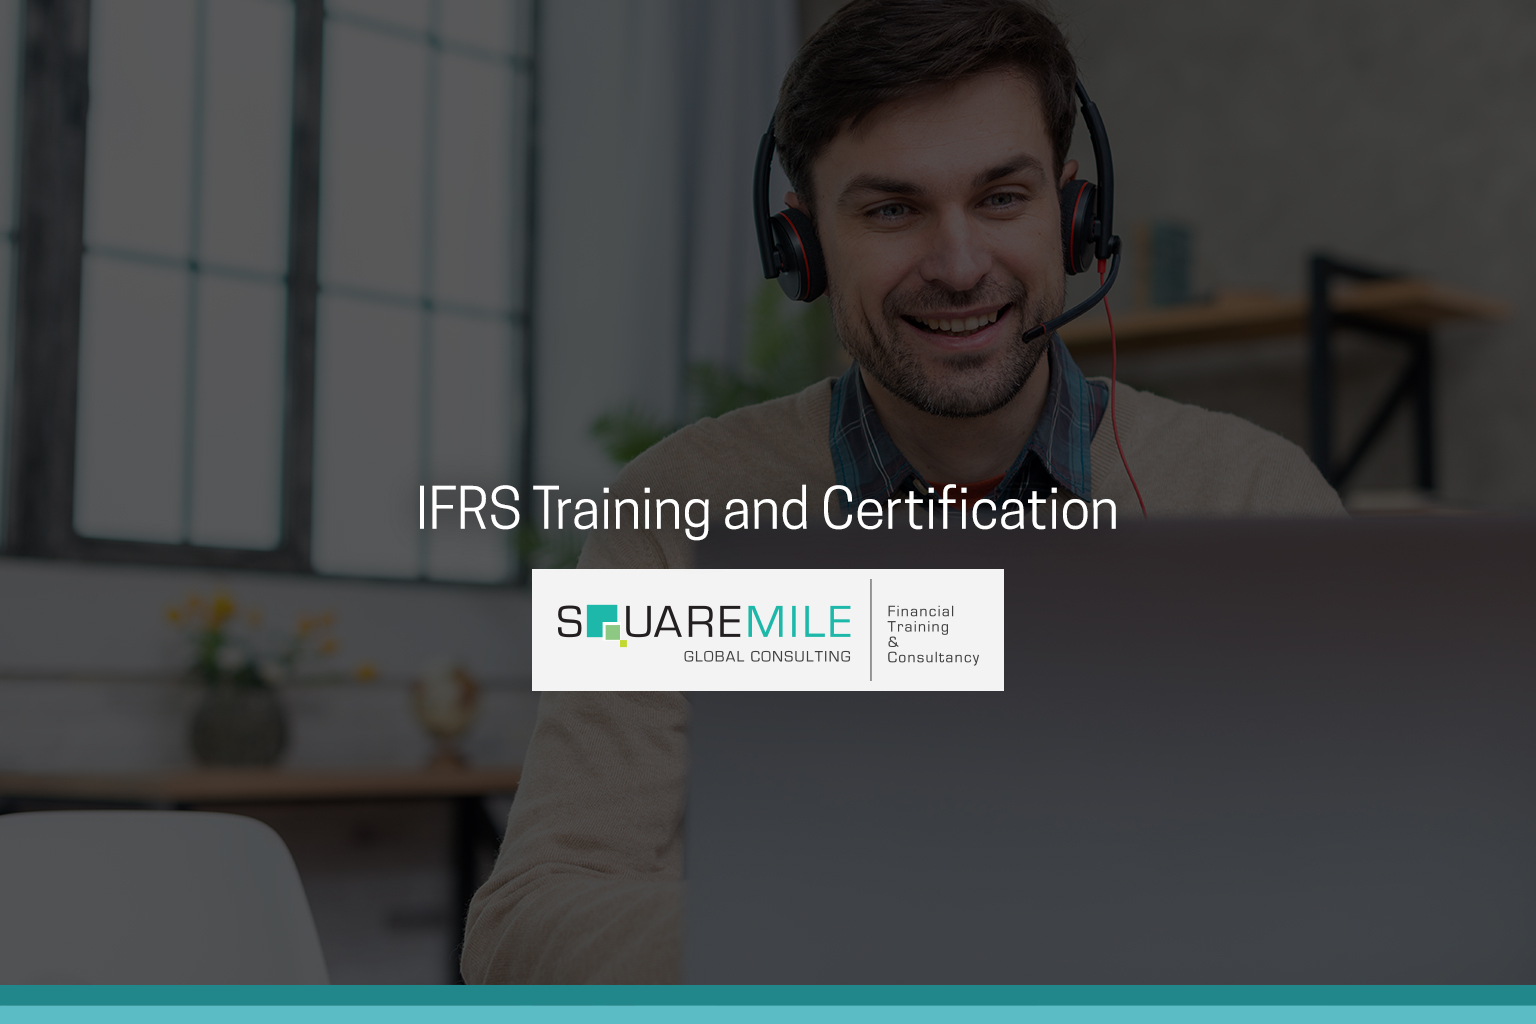 IFRS Training & Certification